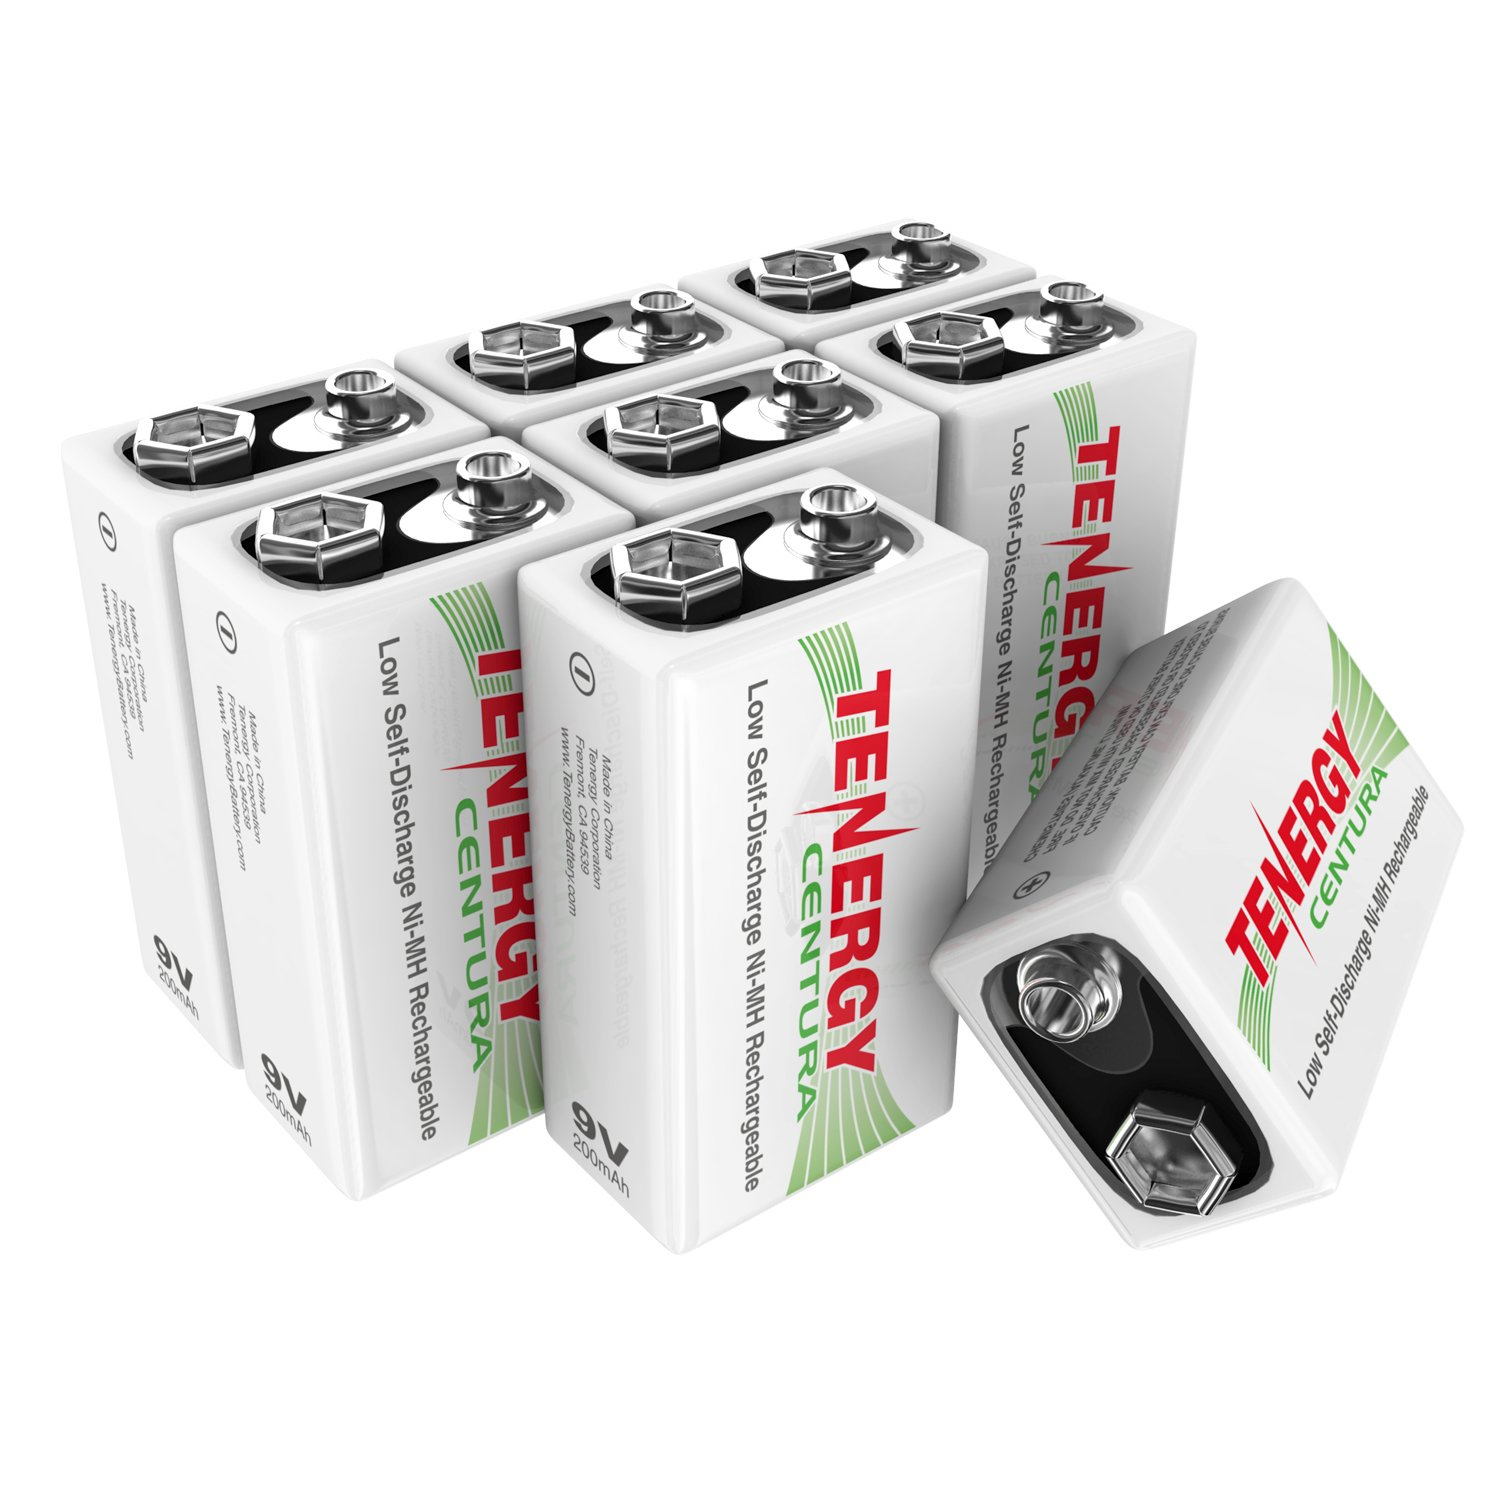 Tenergy9V NIMH Rechargeable Batteries,200mAh Low Self-DischargeSquare Battery for Smoke Alarm/Detector (8 PCS)